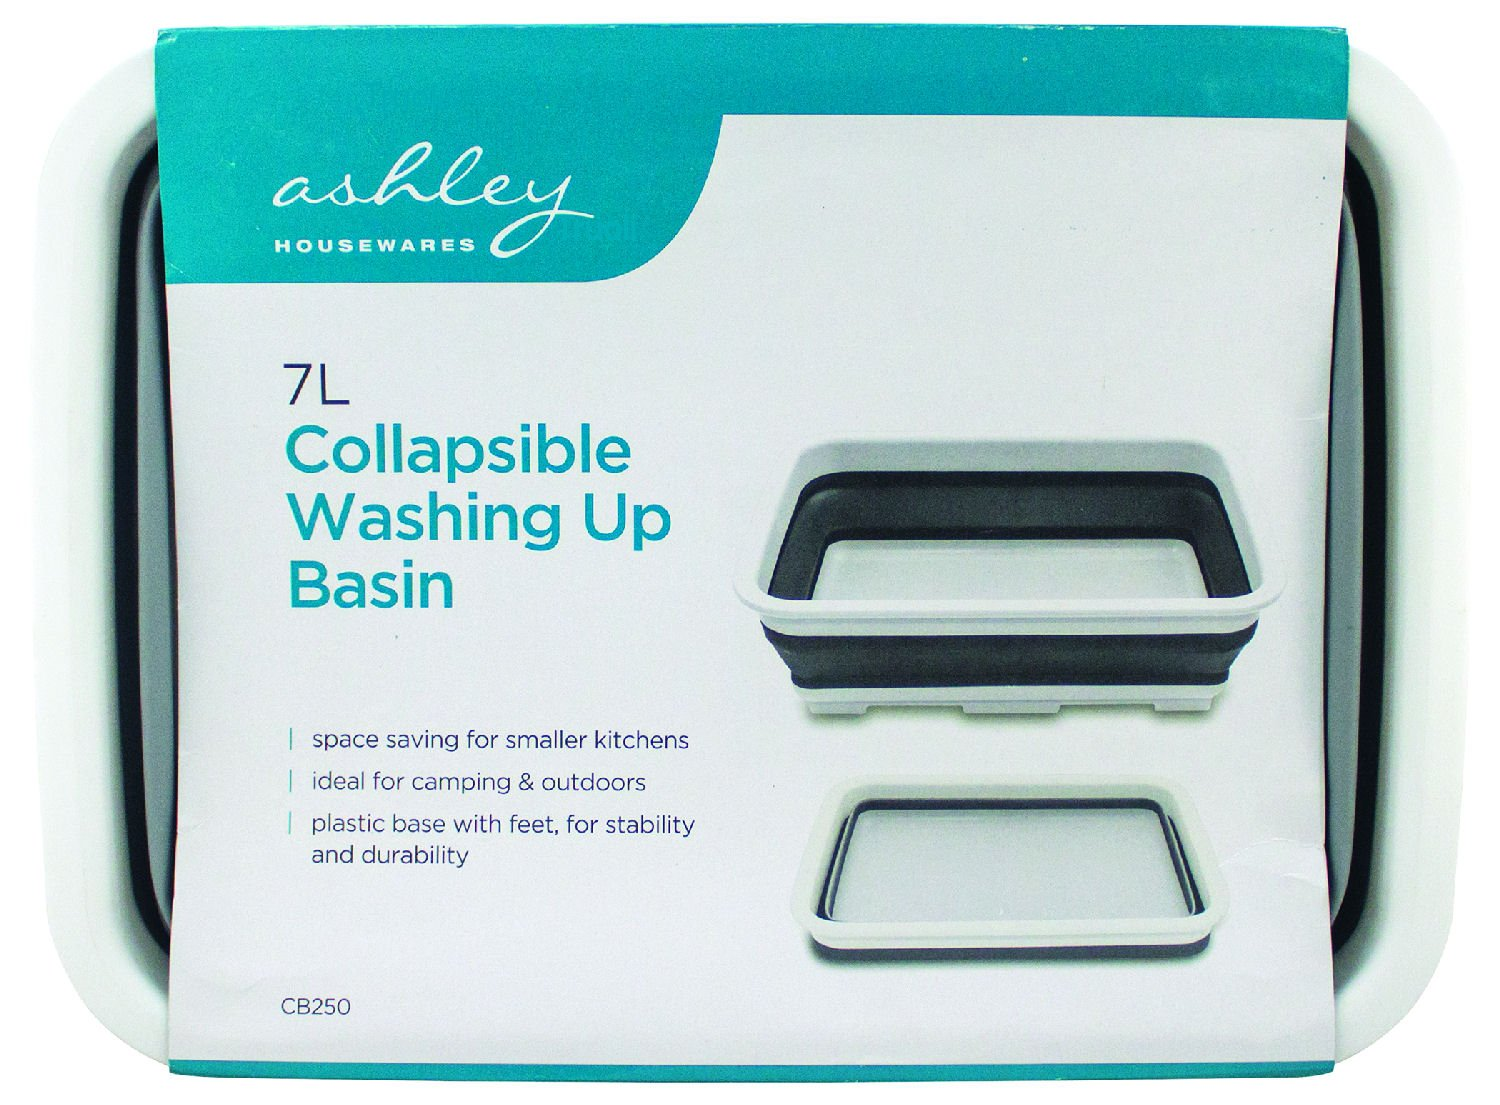 7L Collapsible Washing Basin Space Saver Folding Pop Up Bowl Ashley Housewares